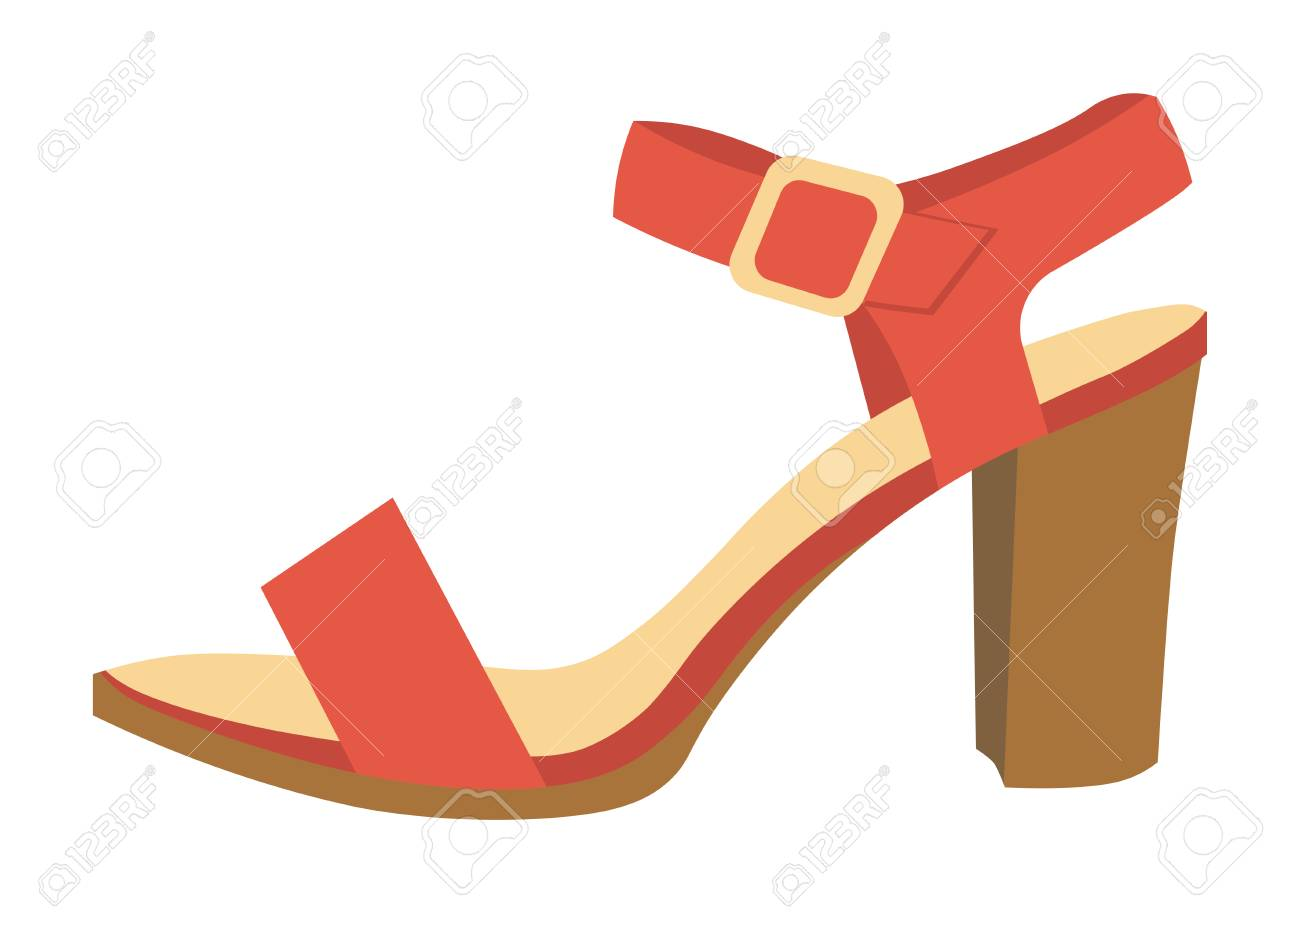 7ee32e805ac Red elegant female sandal with leather belts on comfortable heel isolated  cartoon flat vector illustration on